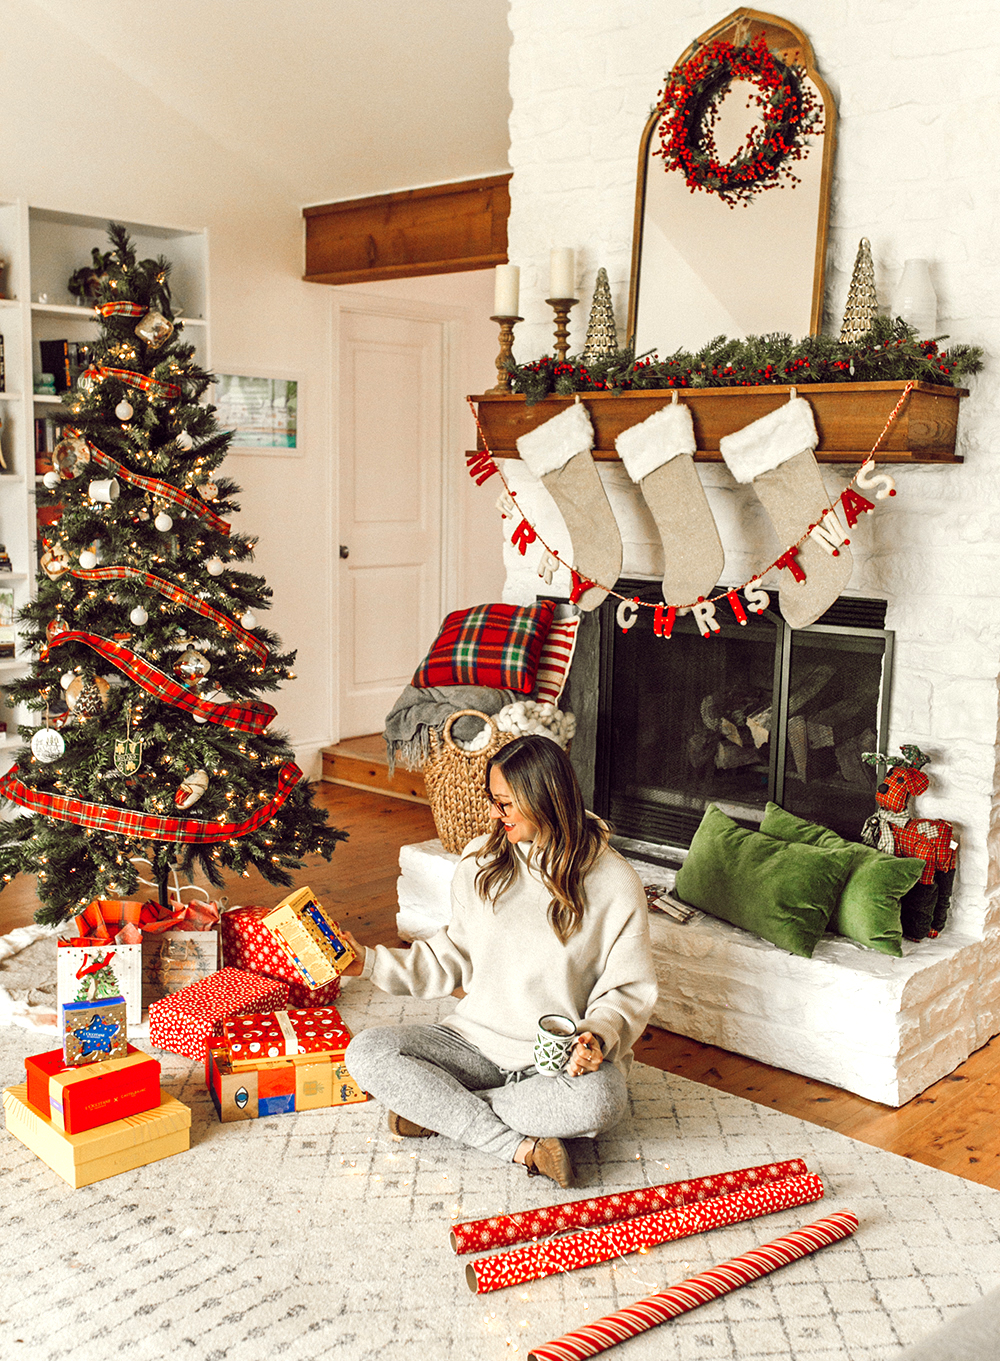 1-livvyland-blog-olivia-watson-austin-texas-lifestyle-blogger-christmas-tree-holiday-gift-idea-l'occitane-beauty-1